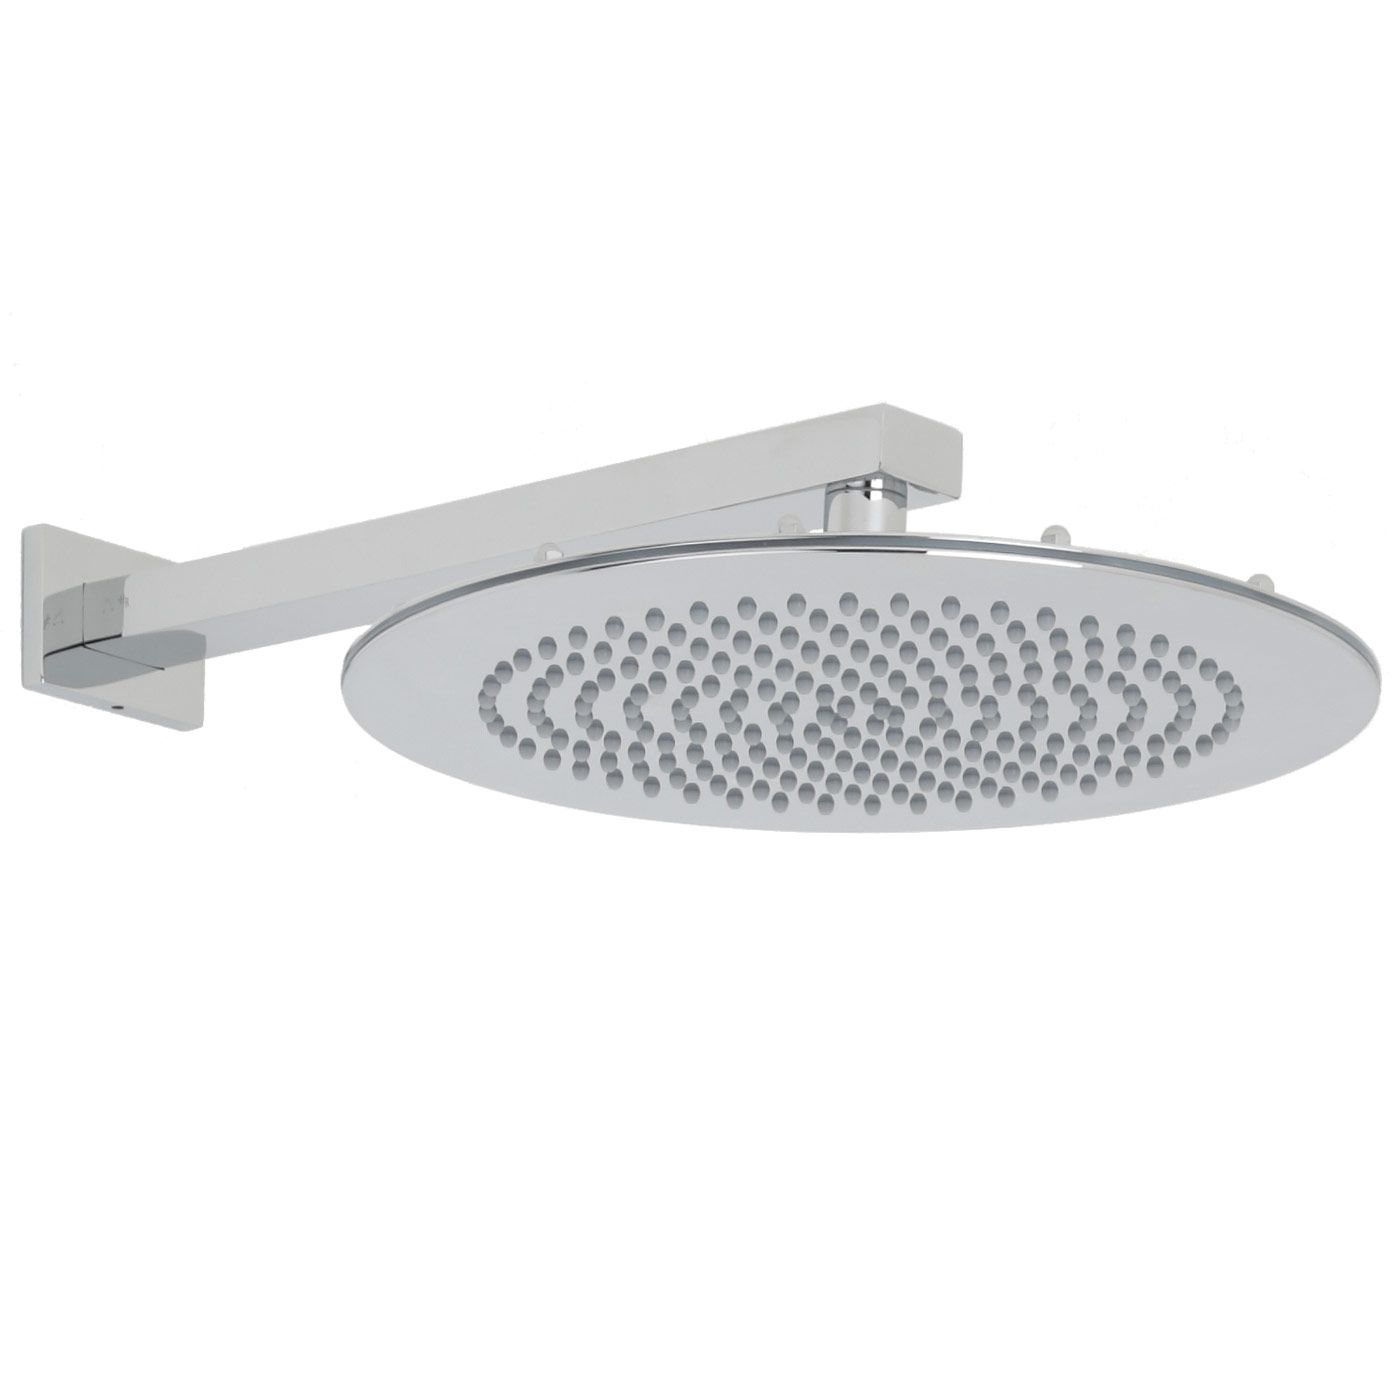 "12"" Round Shower Head with Rectangular Wall Arm"